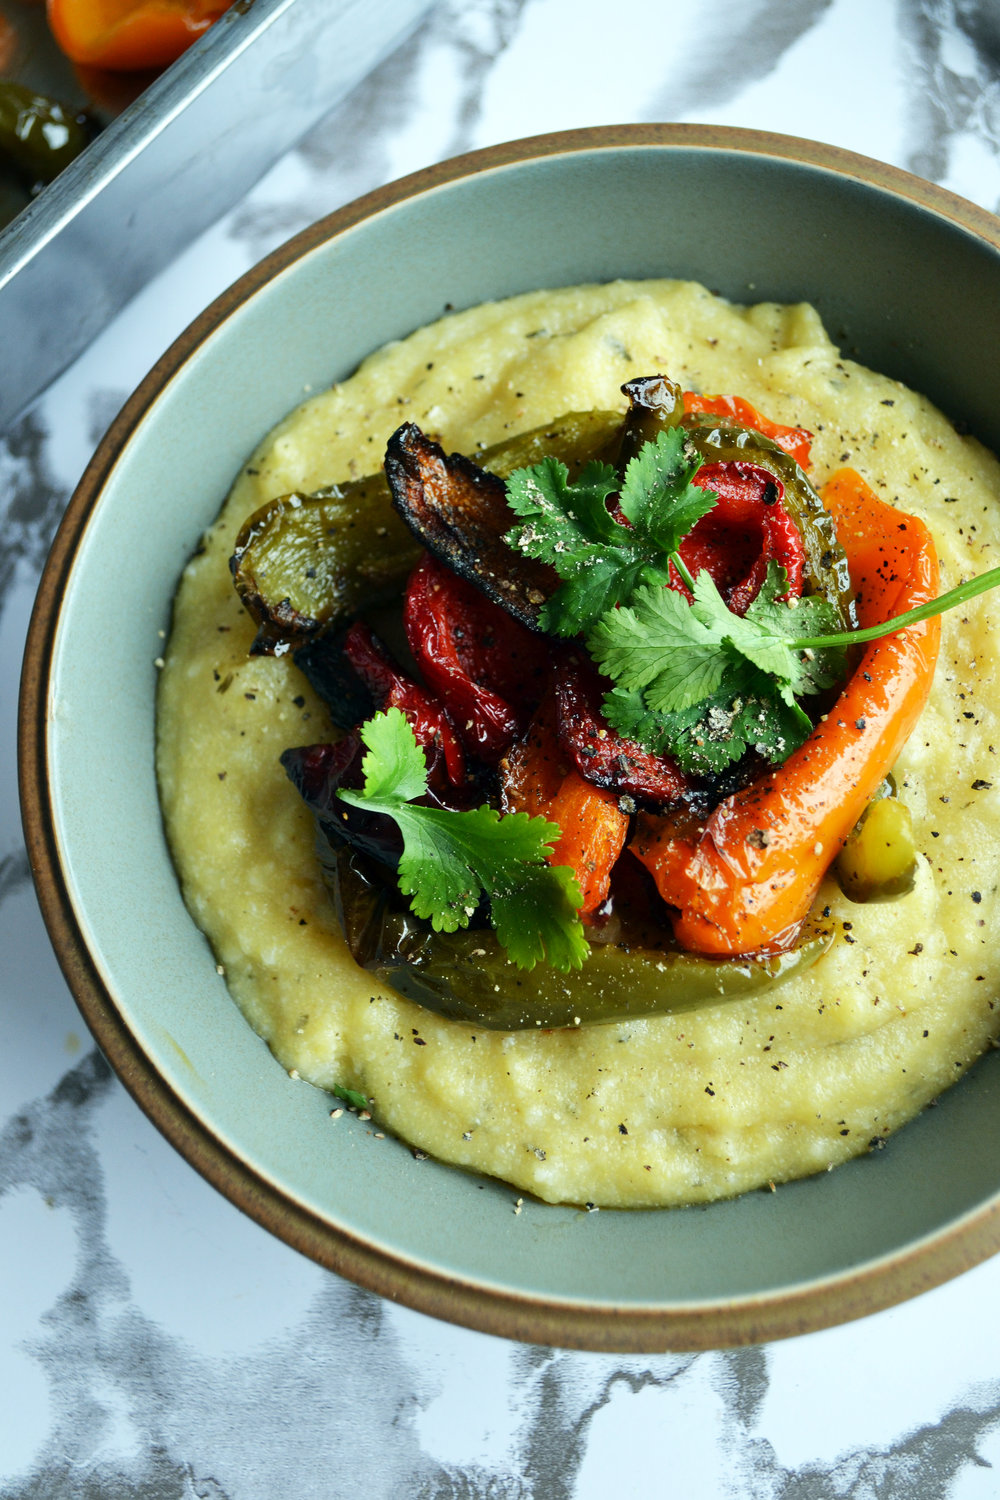 Creamy polenta with roasted peppers | The Flourishing Pantry